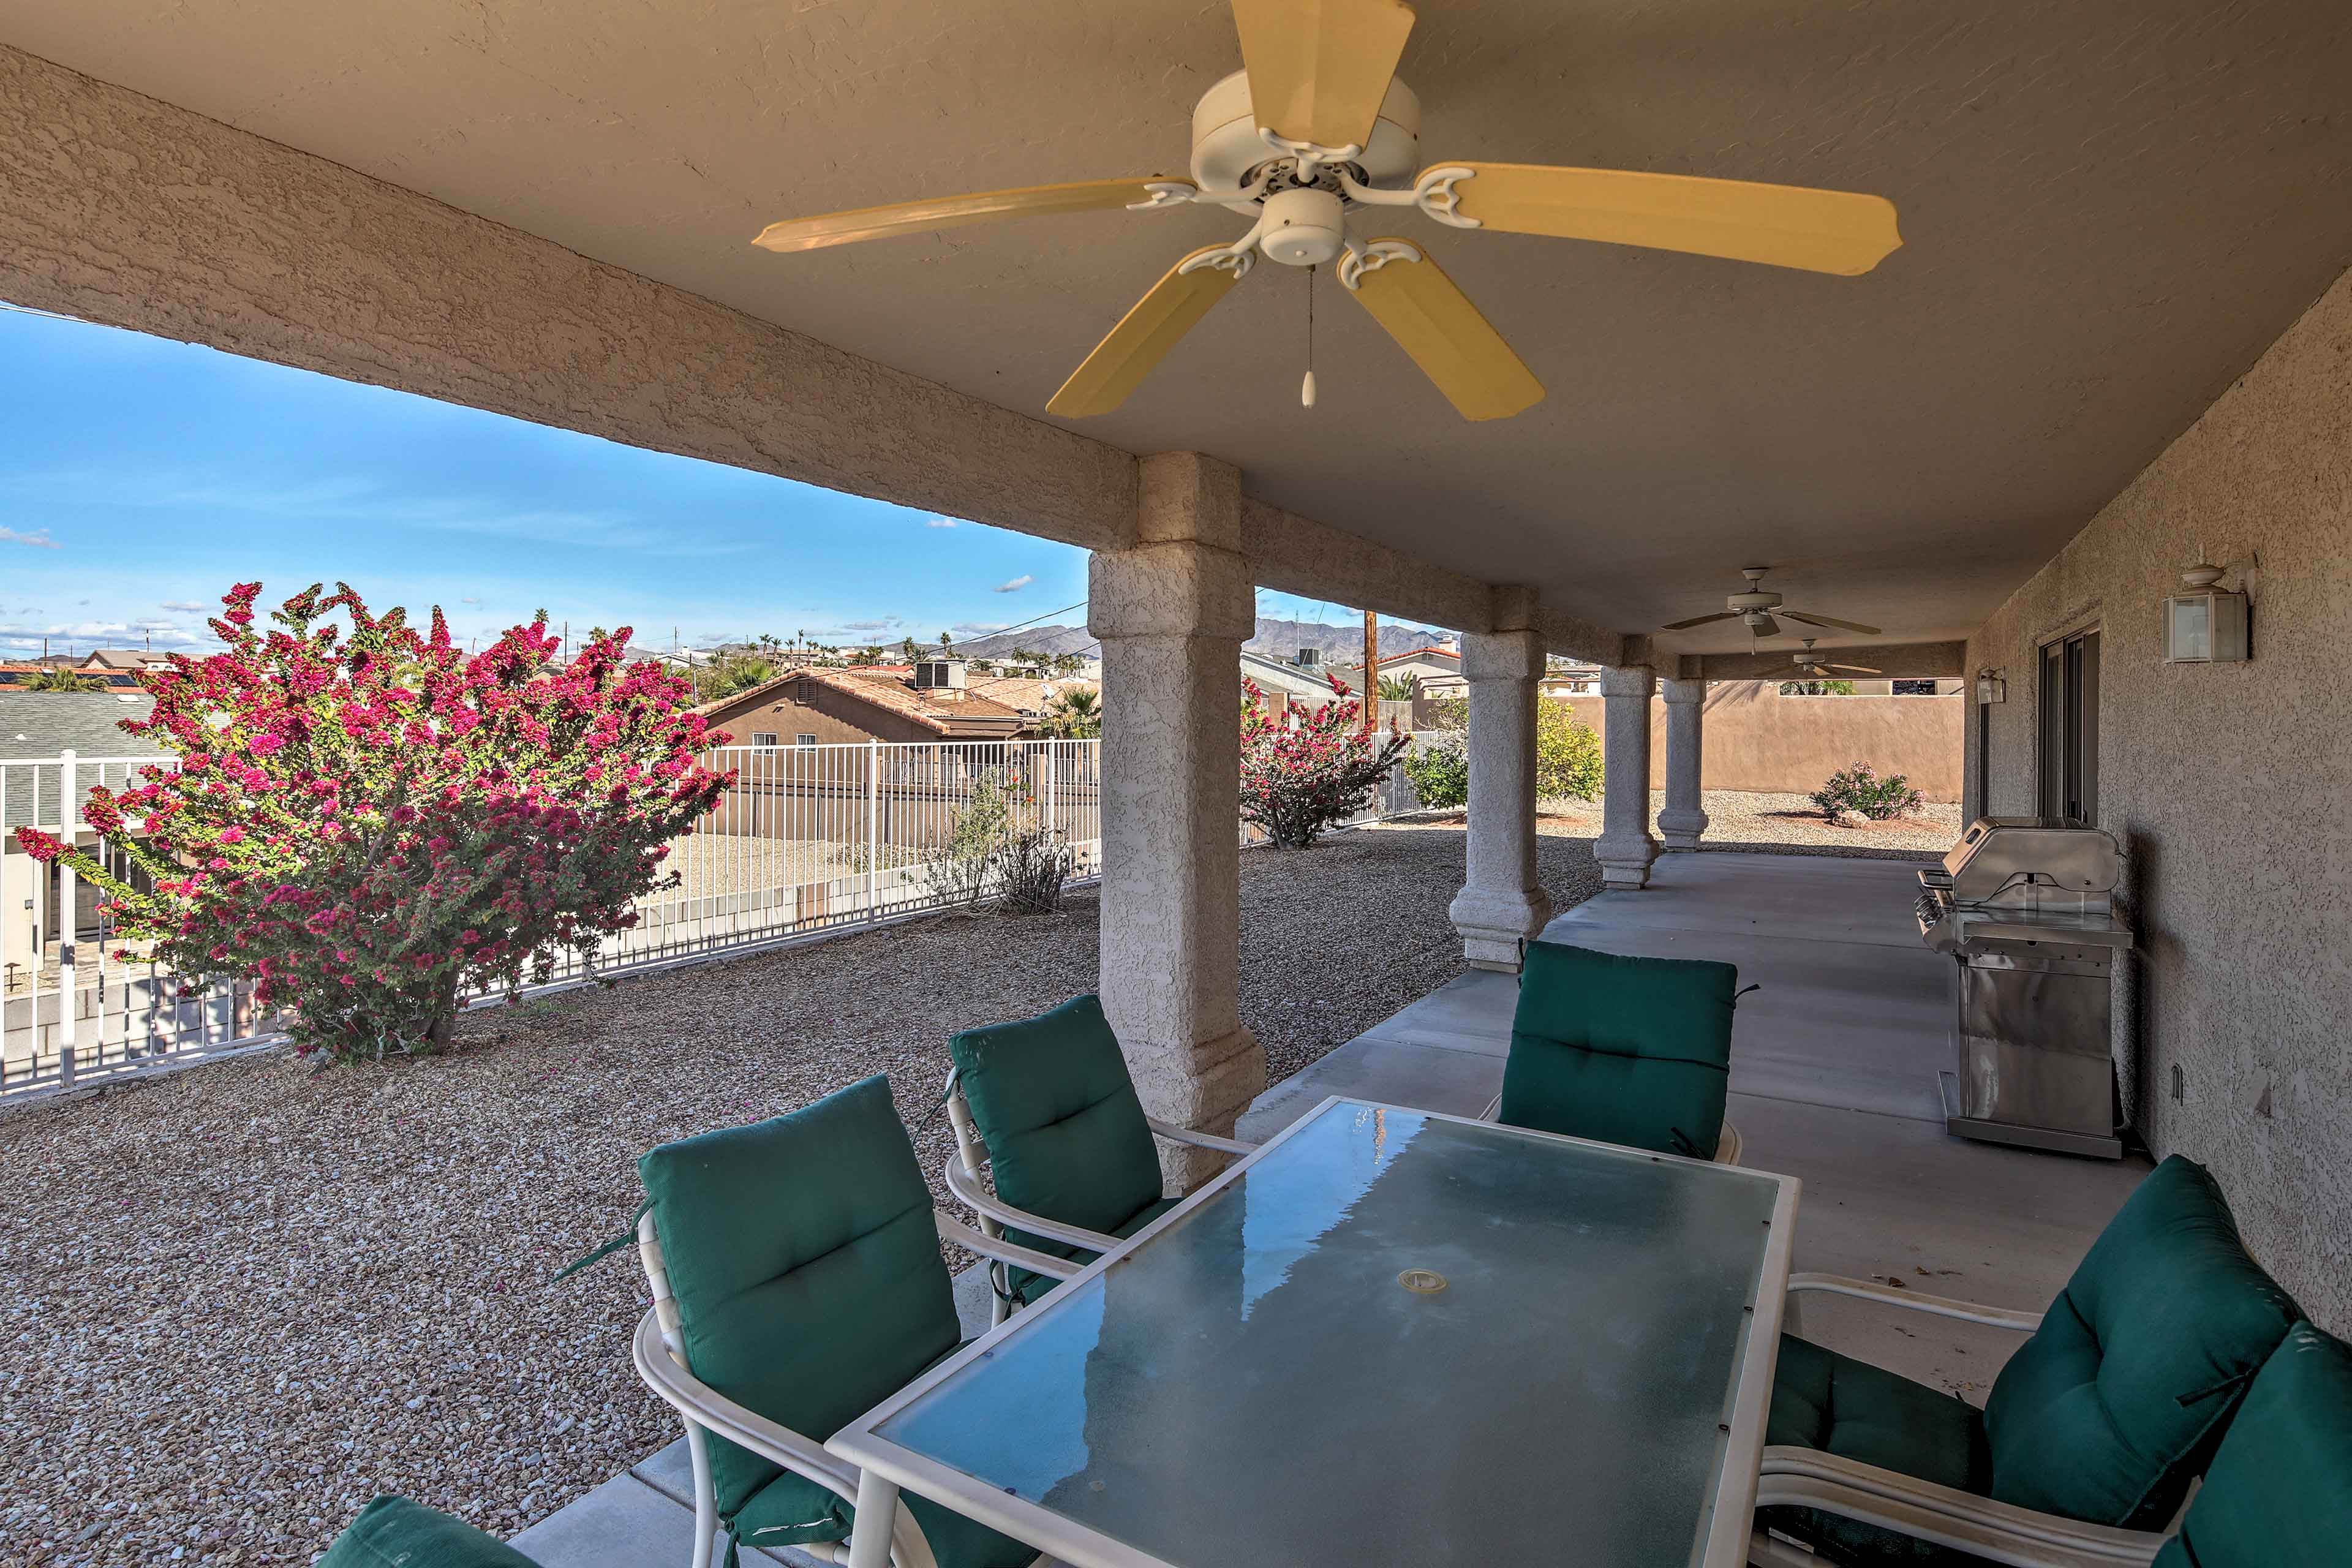 This 3-bed, 2-bath property has space for up to 8 guests.